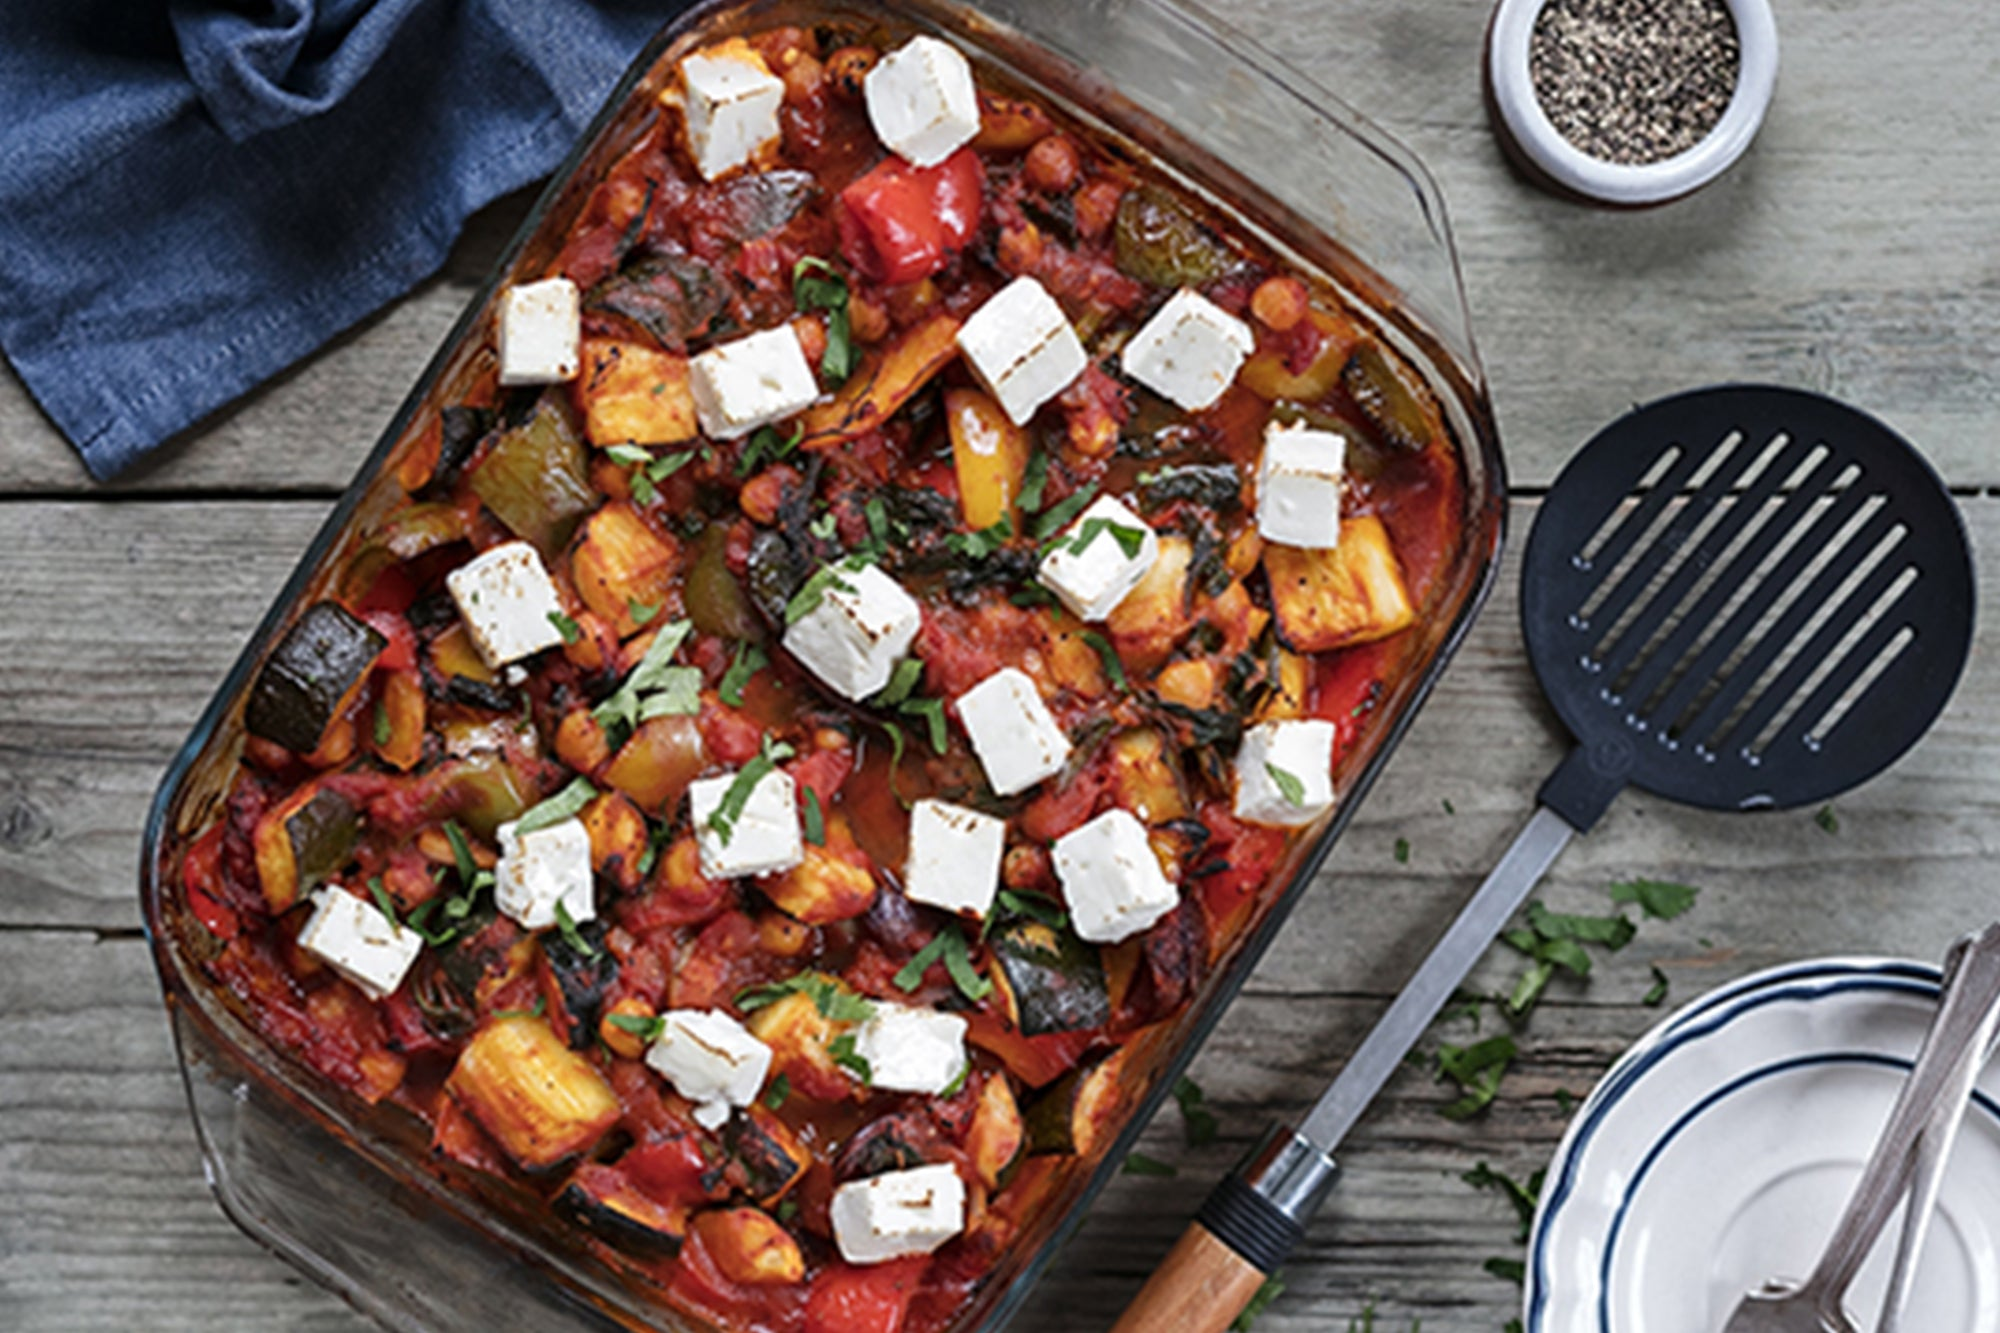 Greek-Style Roasted Vegetable Bake